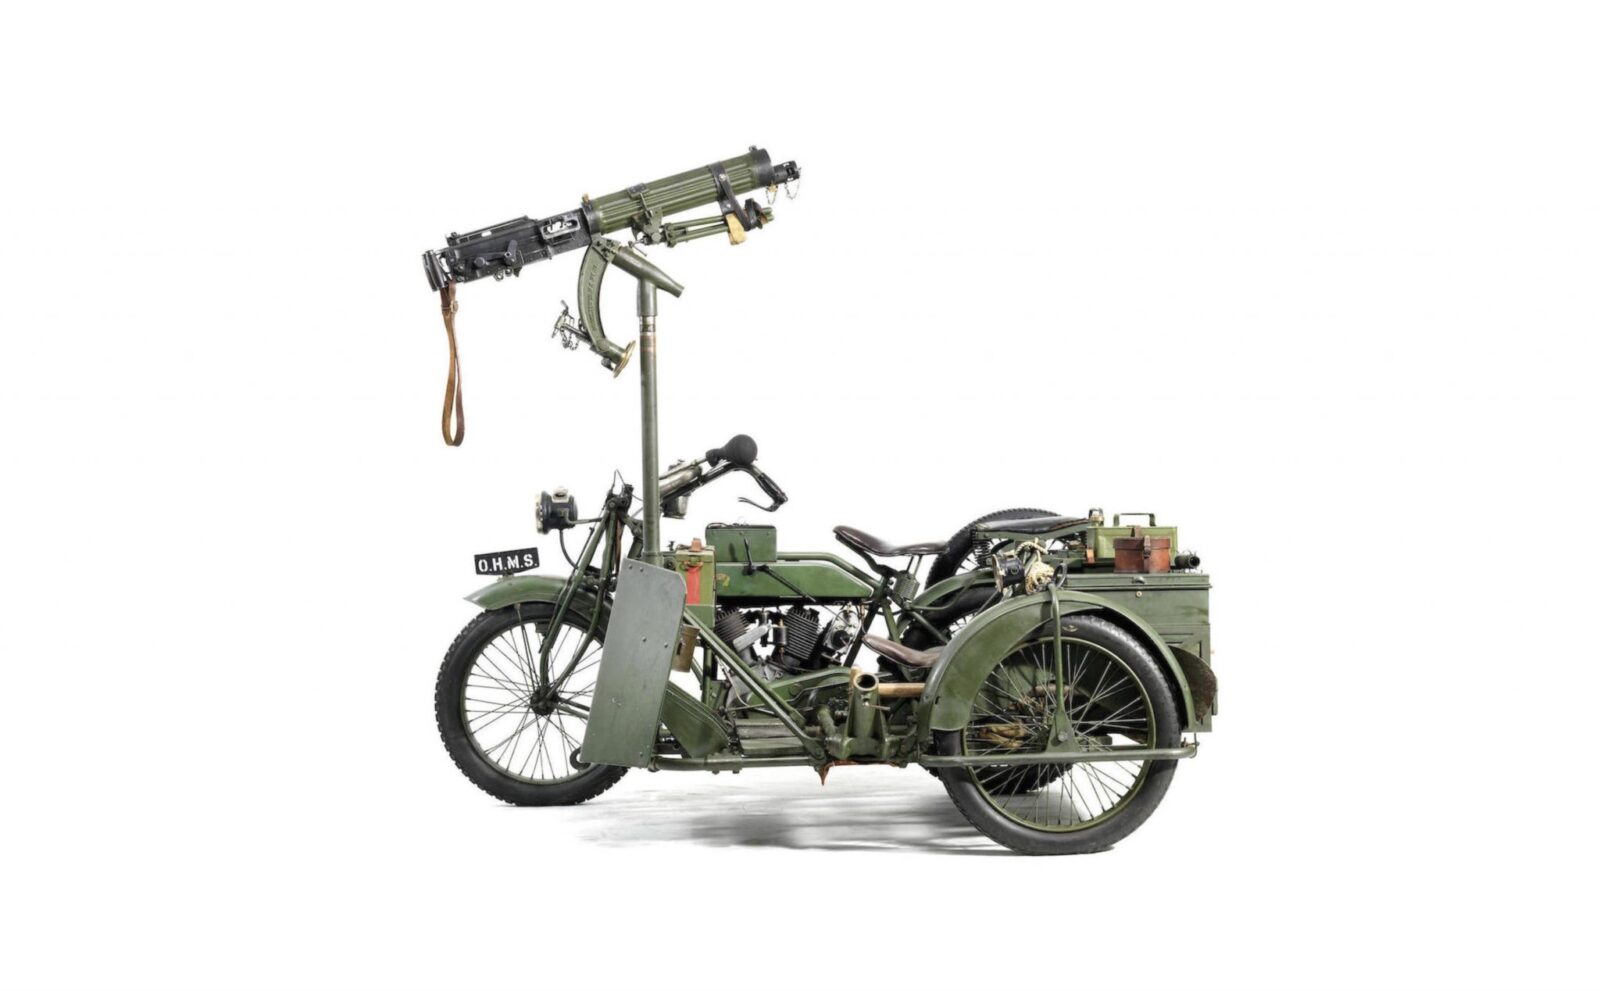 Military Motorcycle 1600x991 - Matchless-Vickers Military Motorcycle